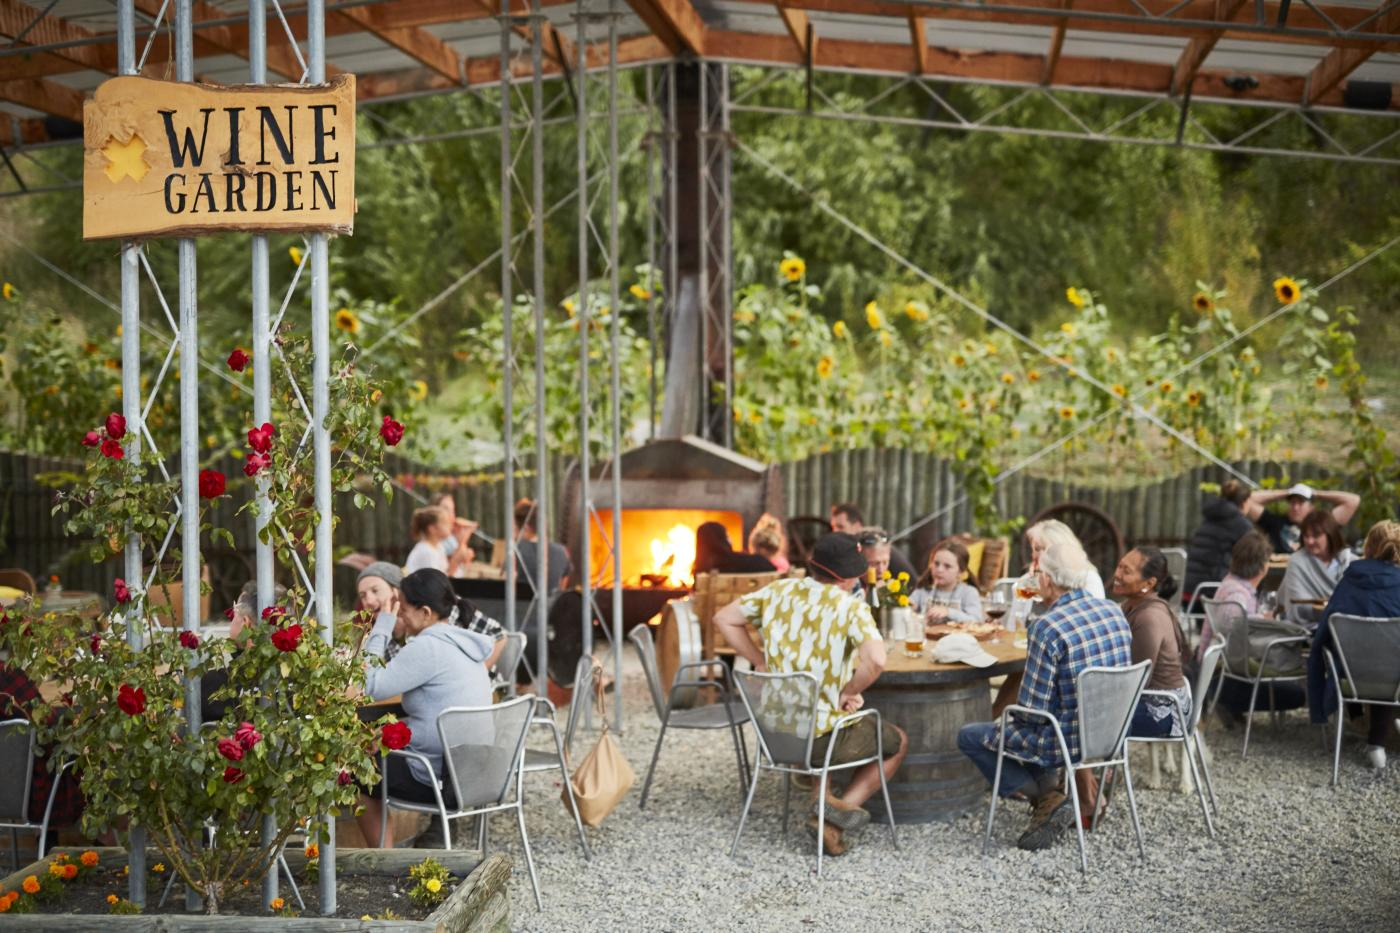 Kinross wine garden and outdoor dining